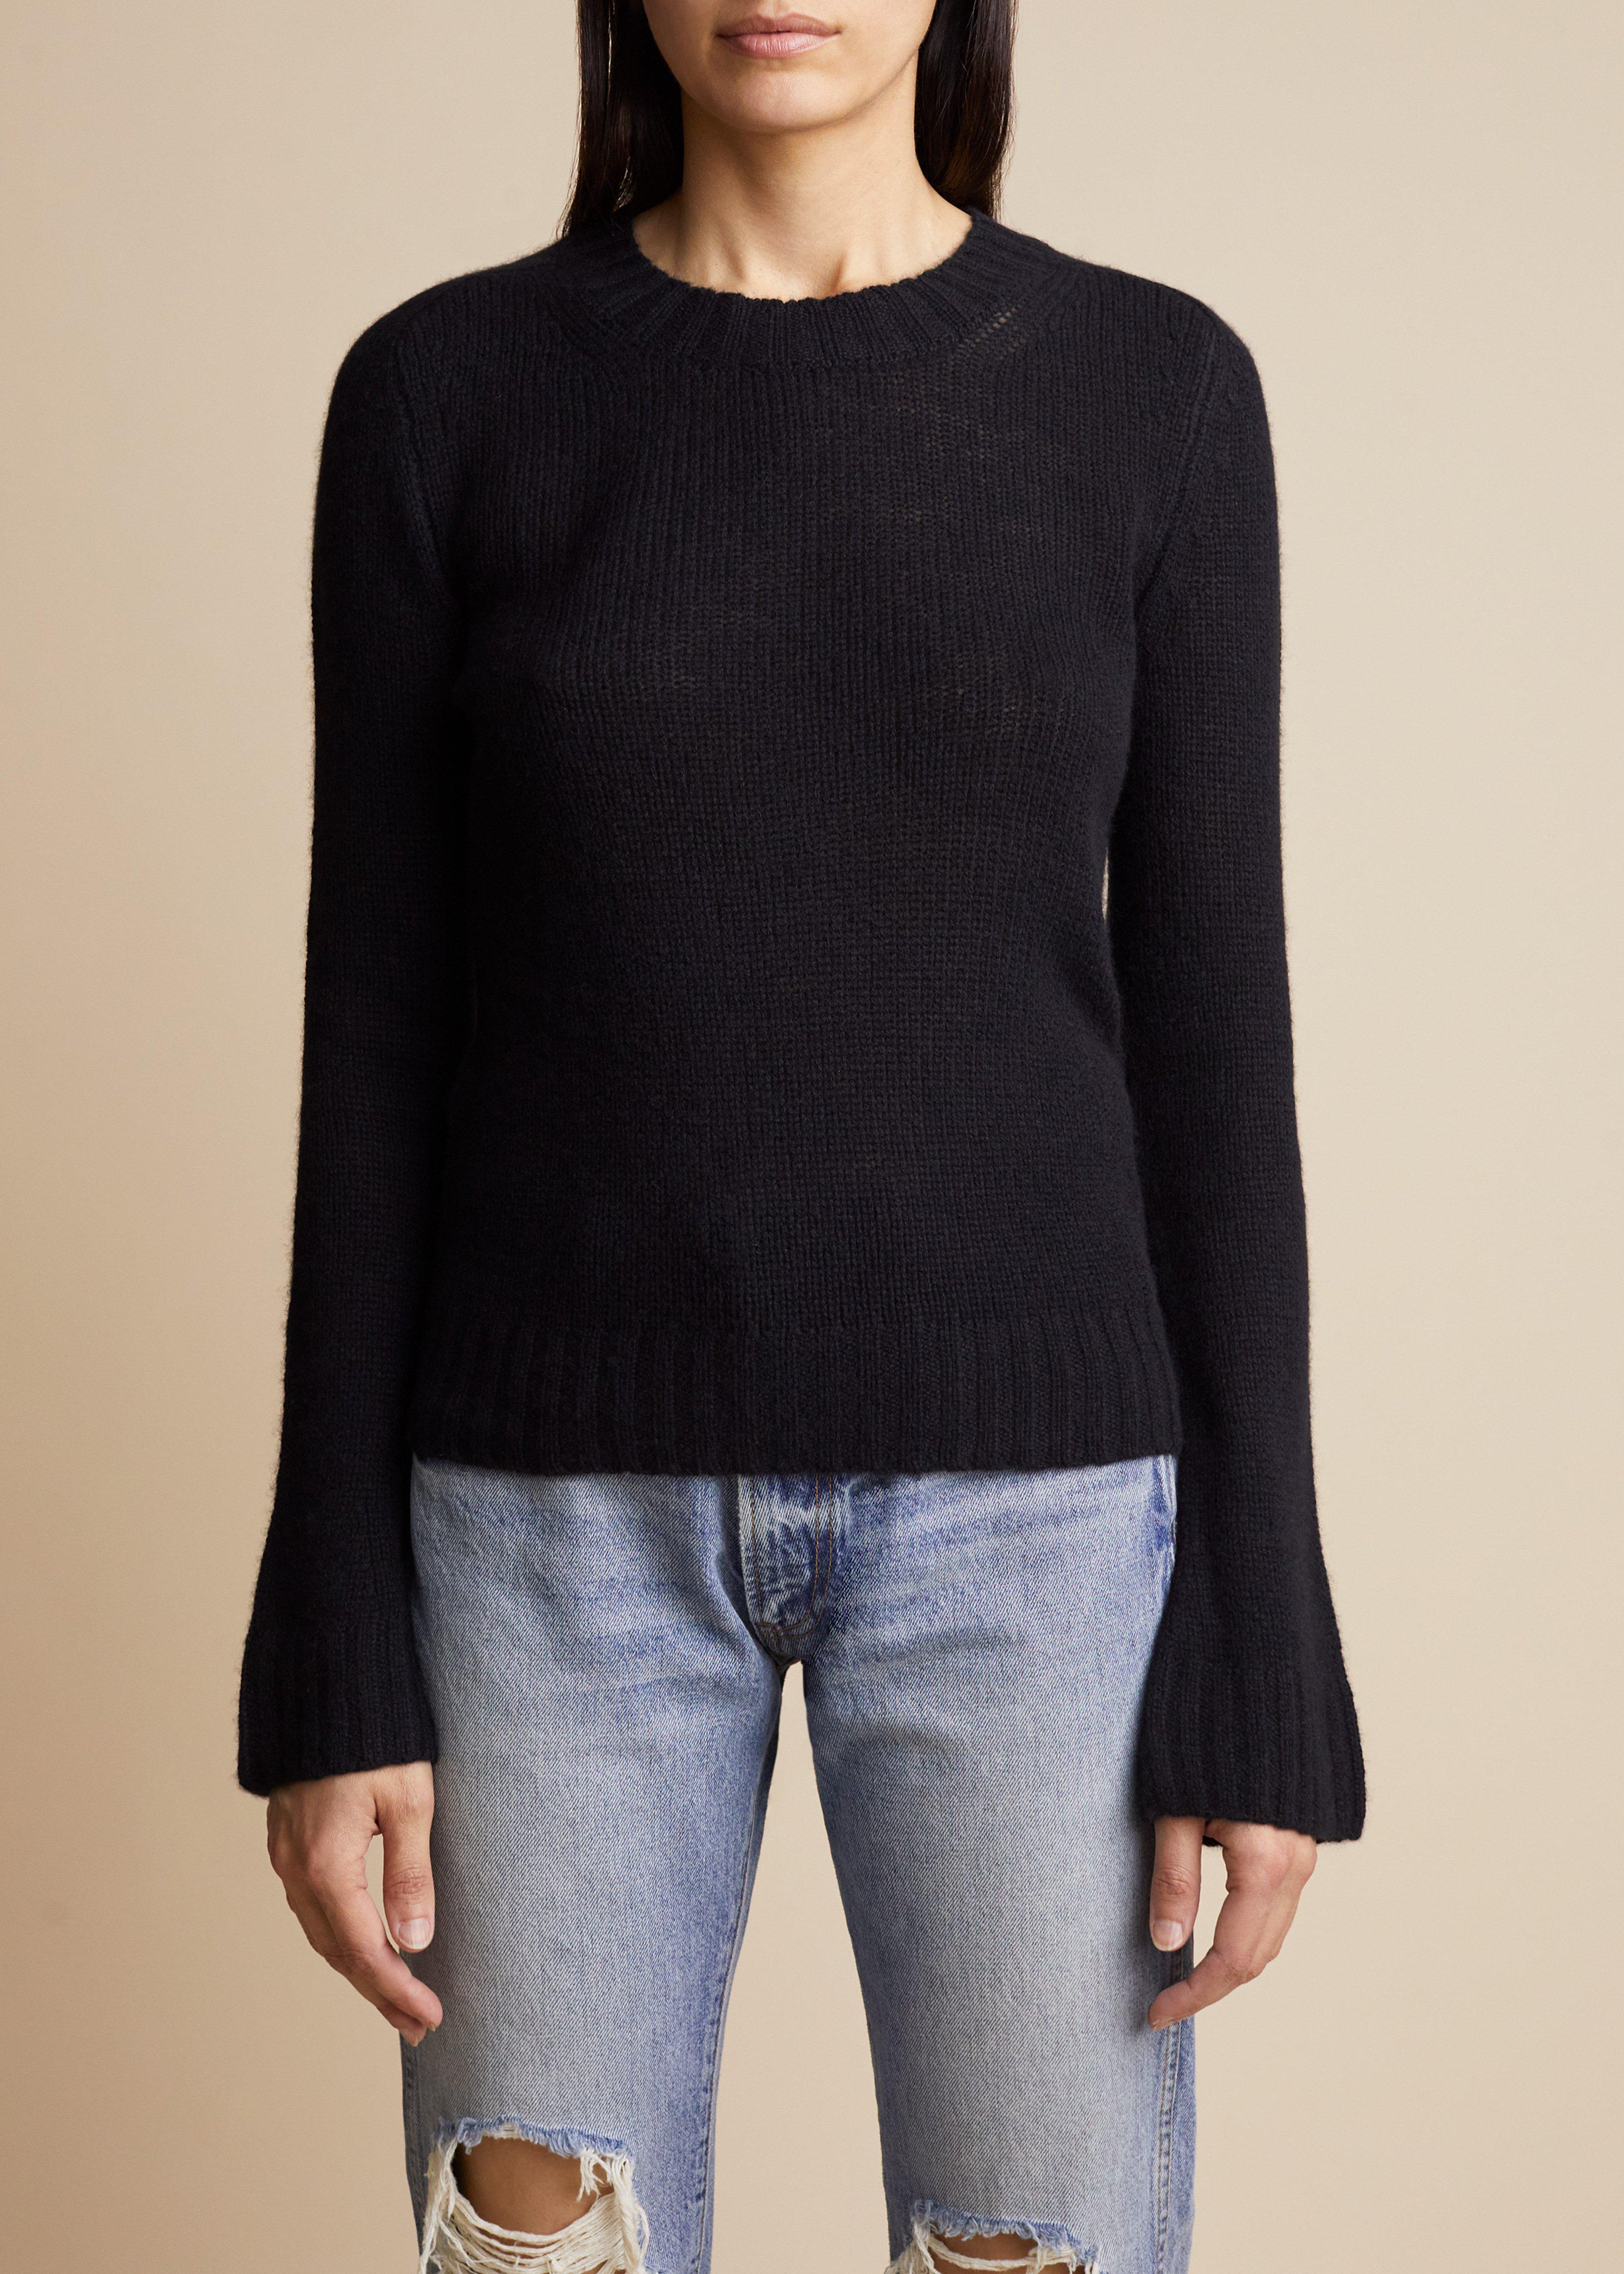 The Mary Jane Sweater in Black